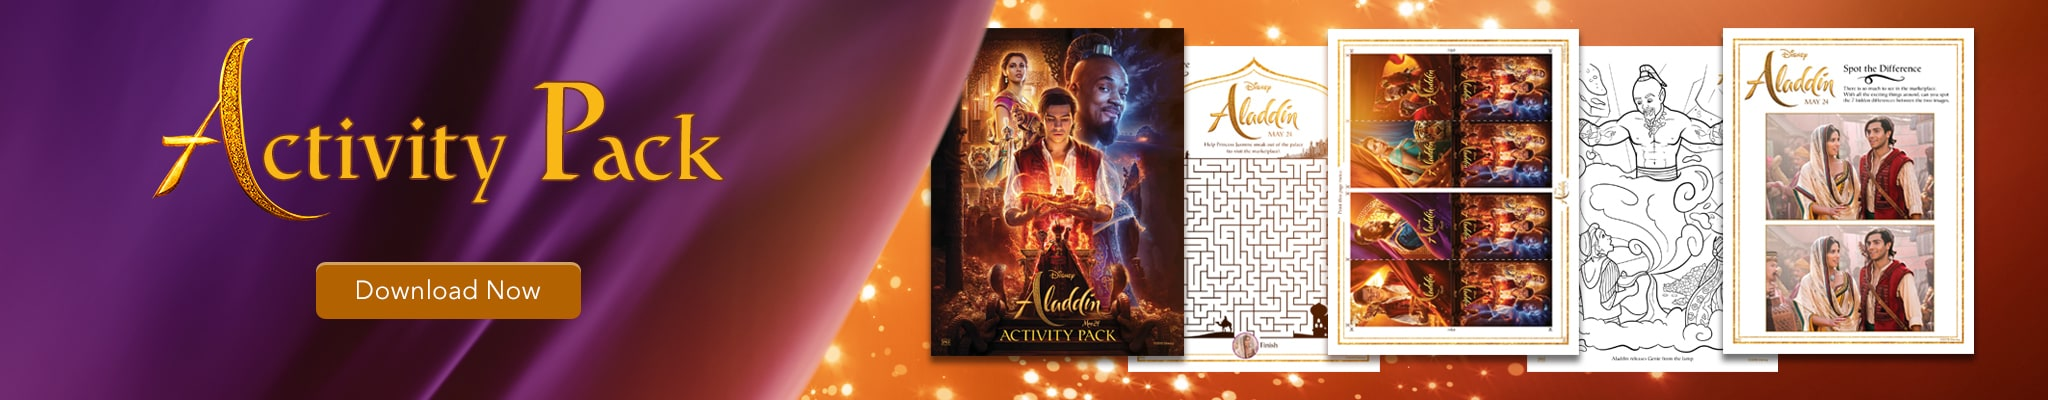 Aladdin activity pack.  Download now.